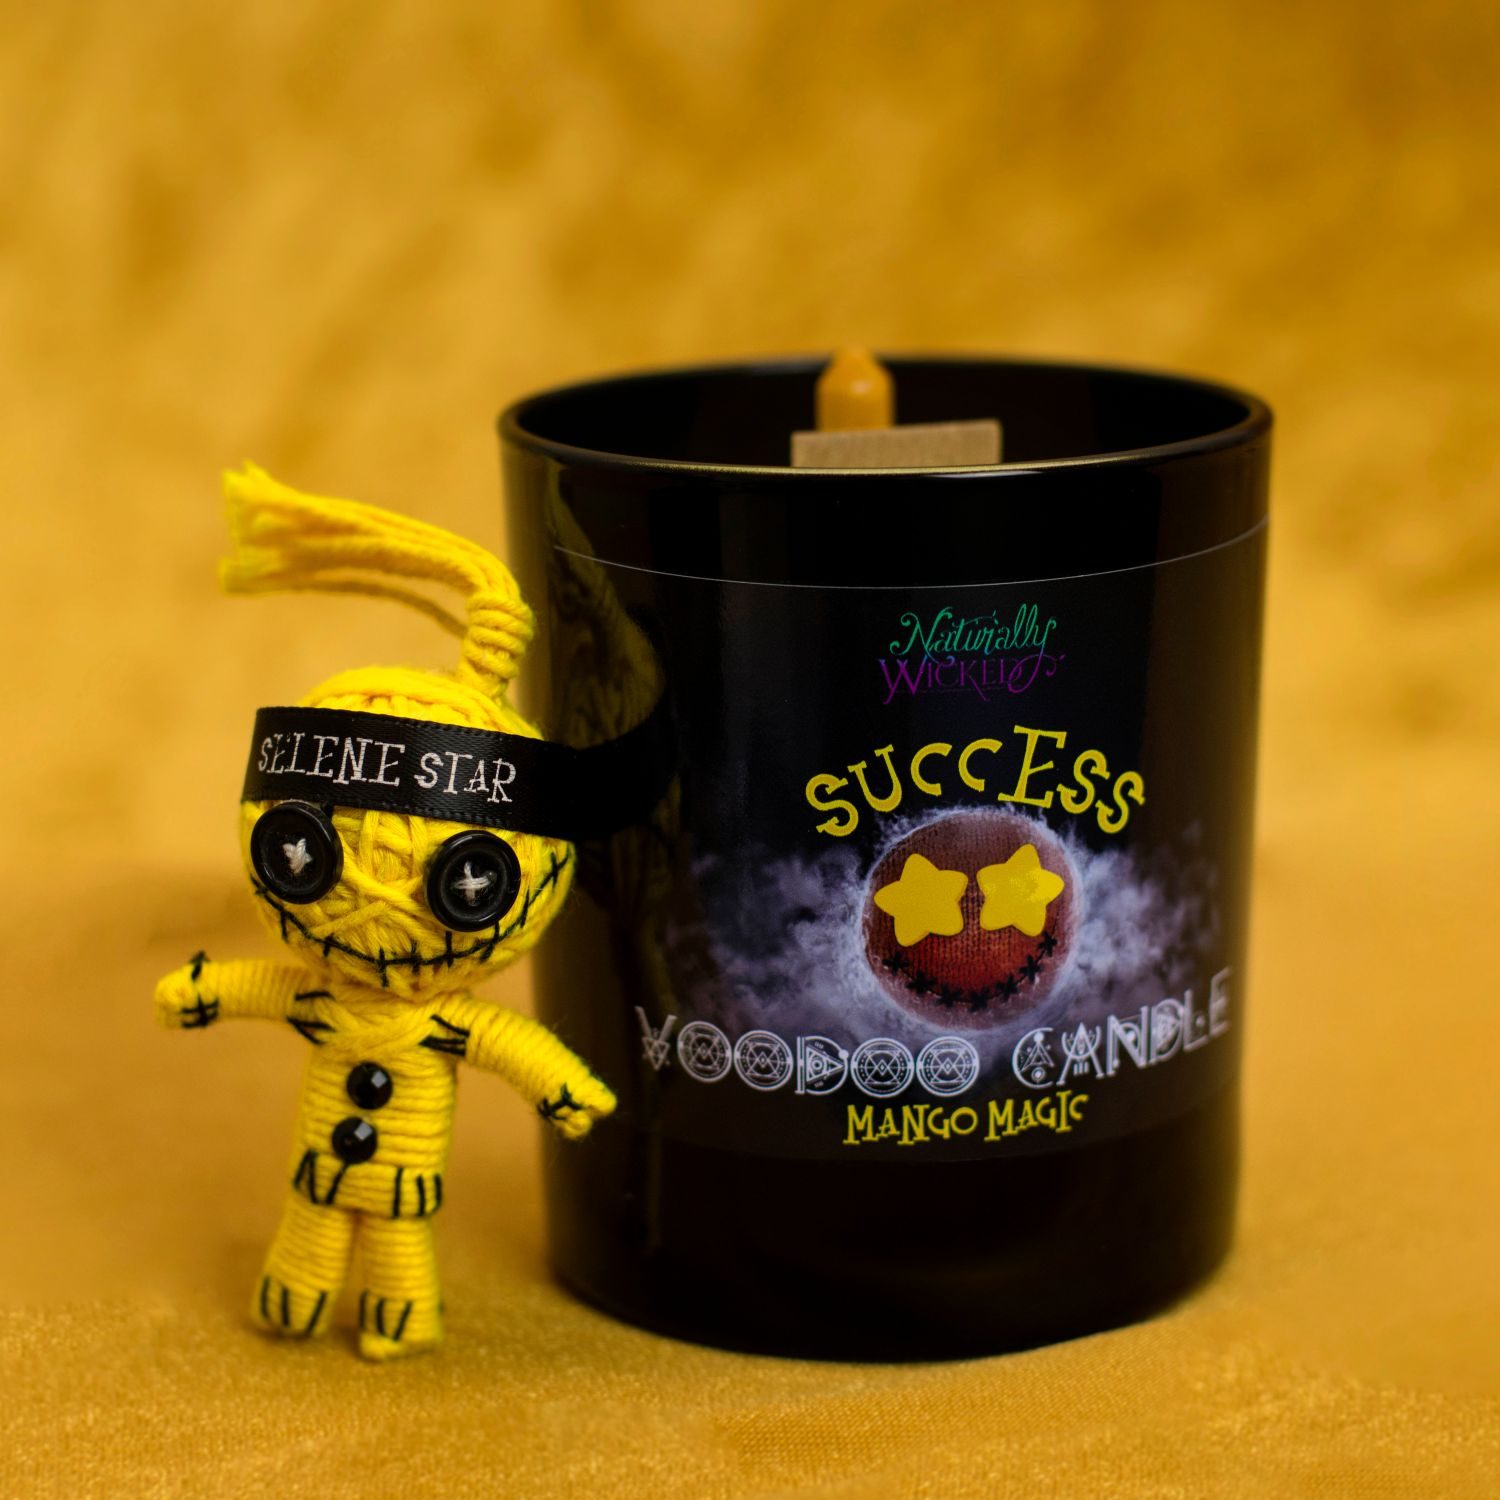 Naturally Wicked Voodoo Success Candle With Bright Yellow Voodoo Doll & Jade Crystal